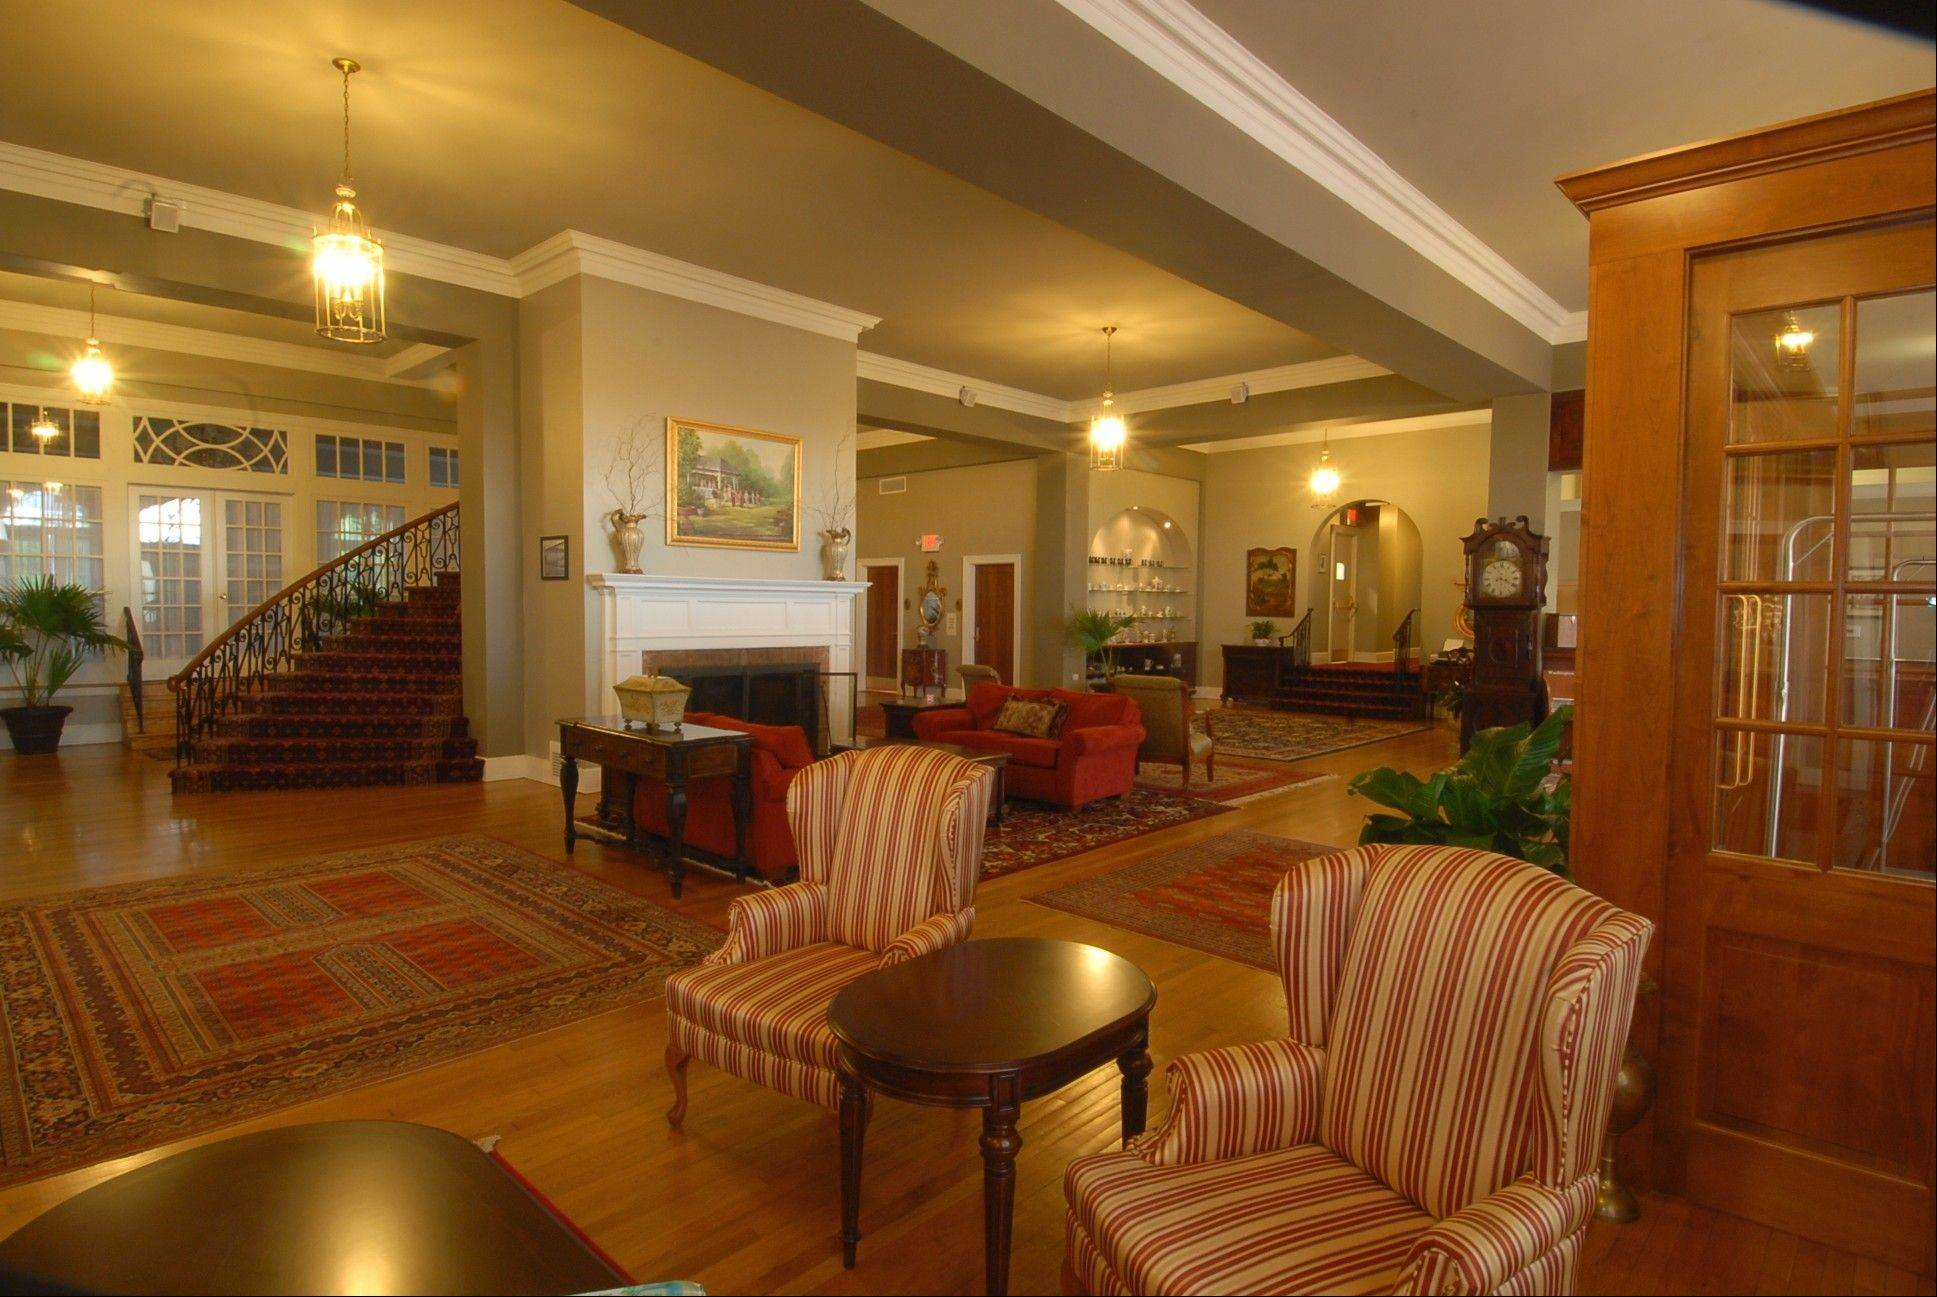 The lobby of the 82-year-old Mimslyn Inn in Luray, Va., was closed for a year in 2007 while undergoing a $3.5 million renovation.